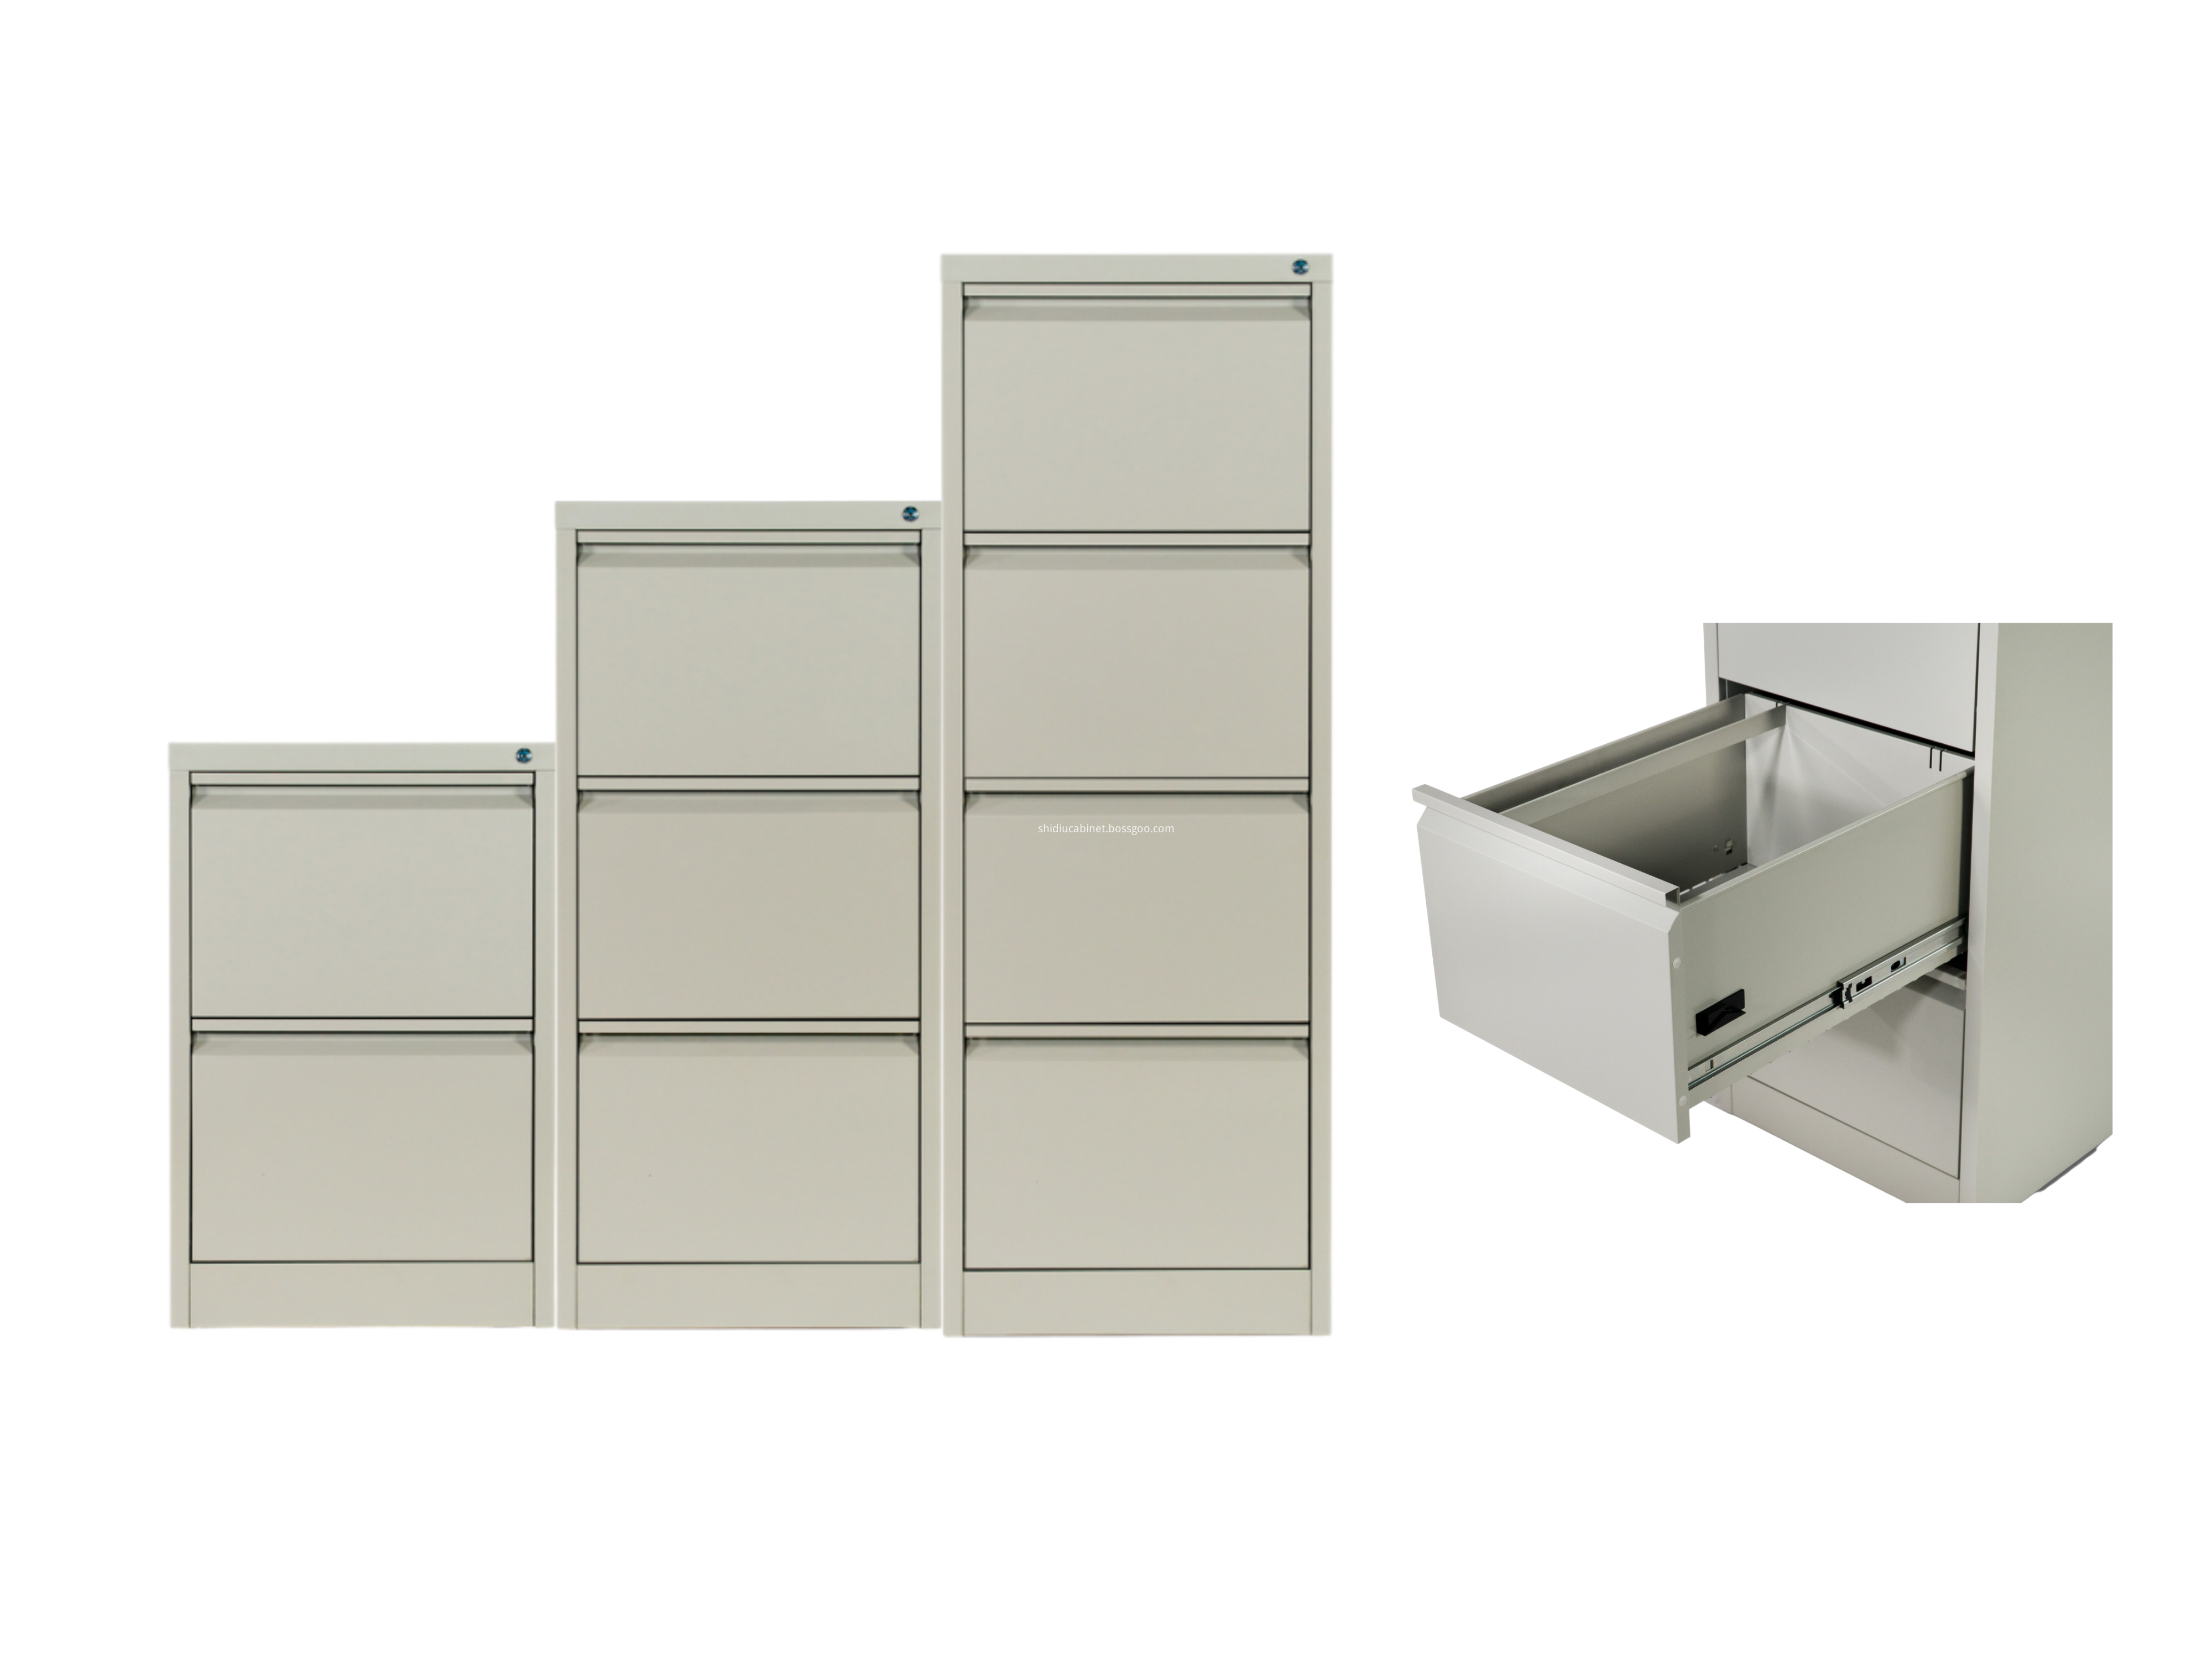 VERTICAL DRAWERS FILING CABINETS